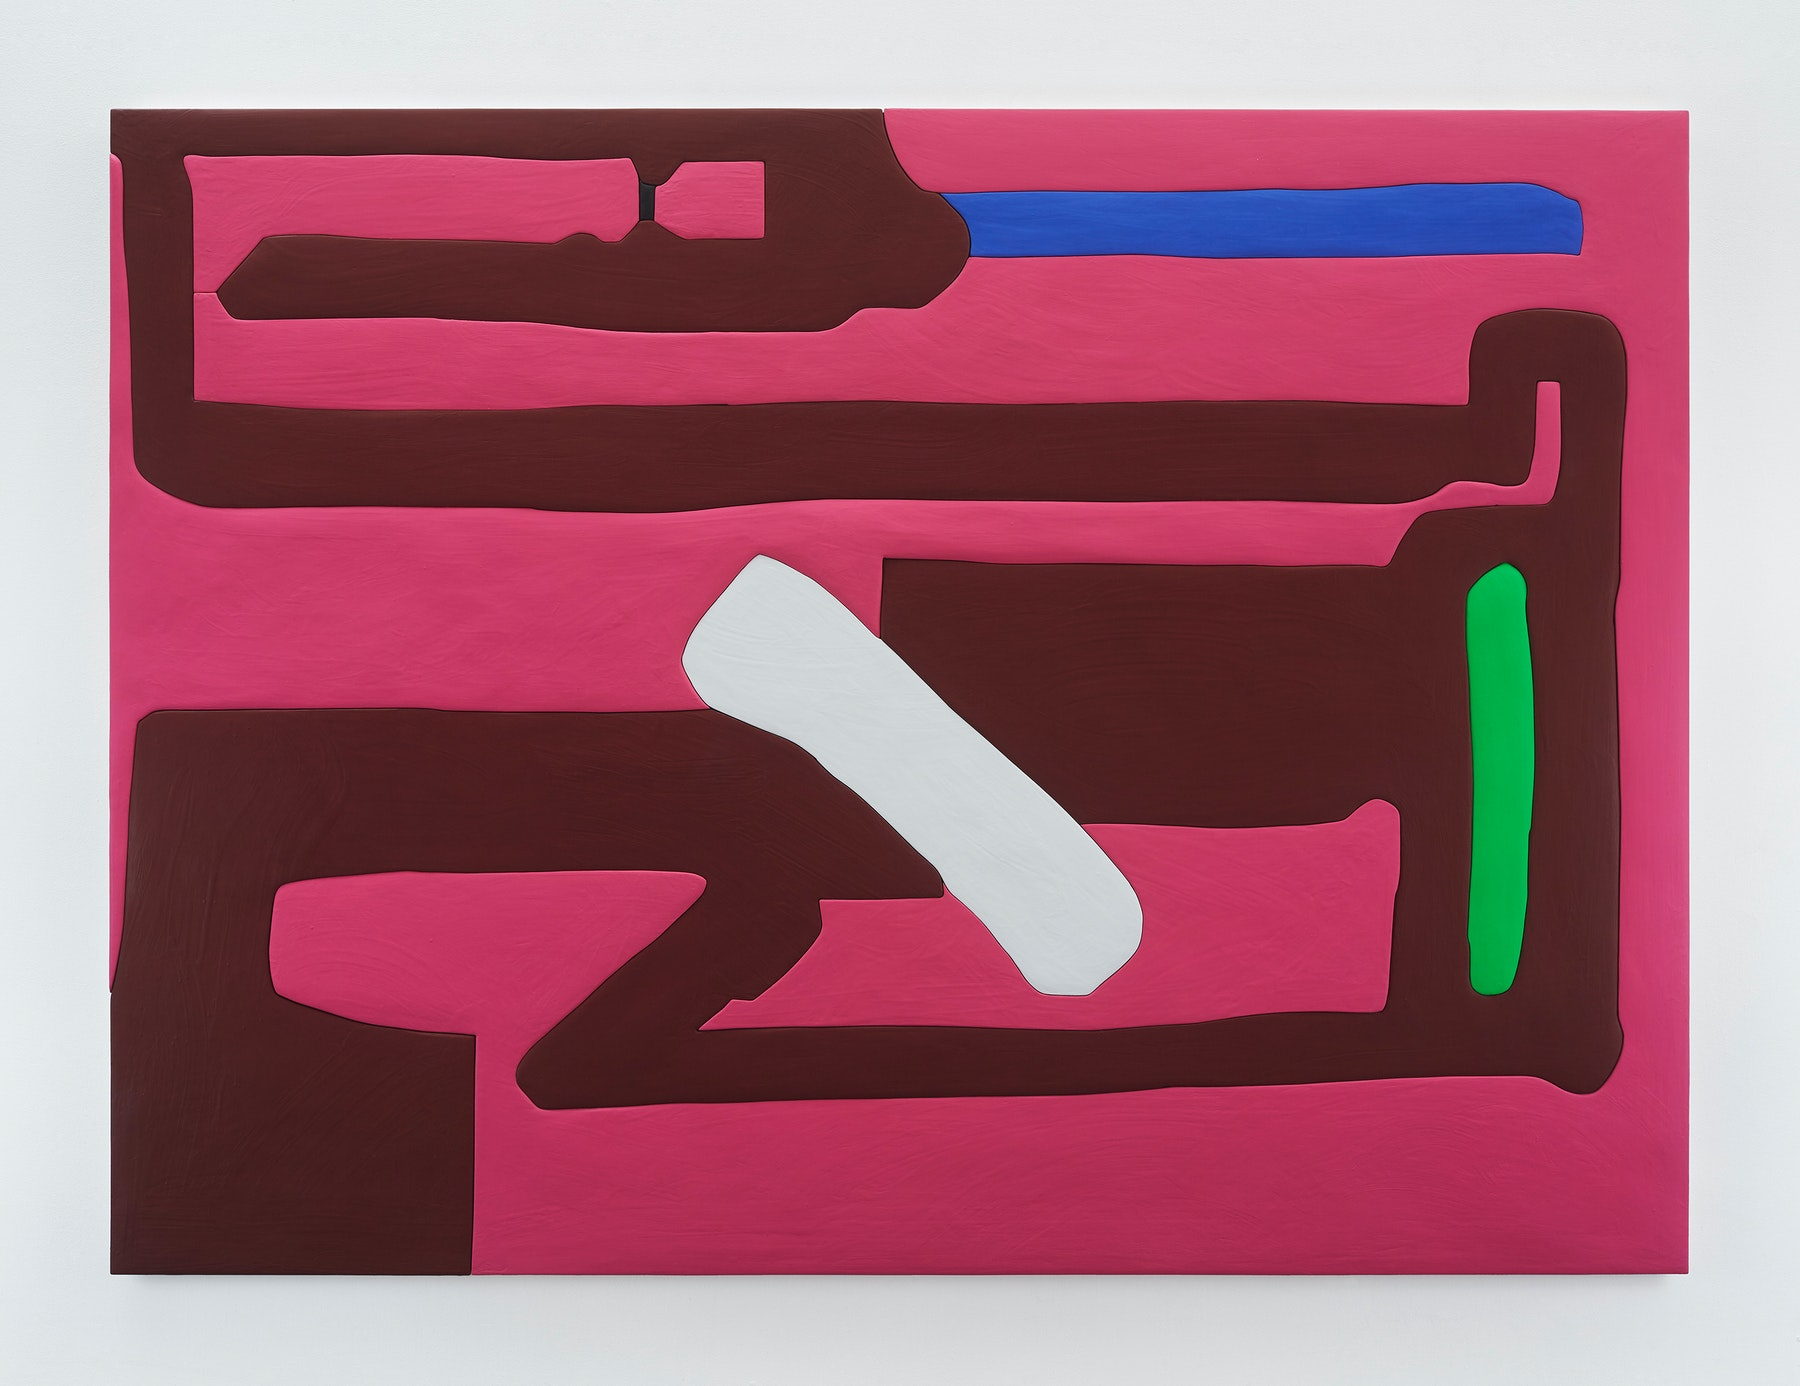 "Sadie Benning ""Untitled 4,"" 2019 Wood, aqua resin, casein, and acrylic gouache 59 x 80"" [HxW] (149.86 x 203.2 cm) Inventory #BEN858 Courtesy of the artist and Vielmetter Los Angeles Photocredit: Chris Austin"